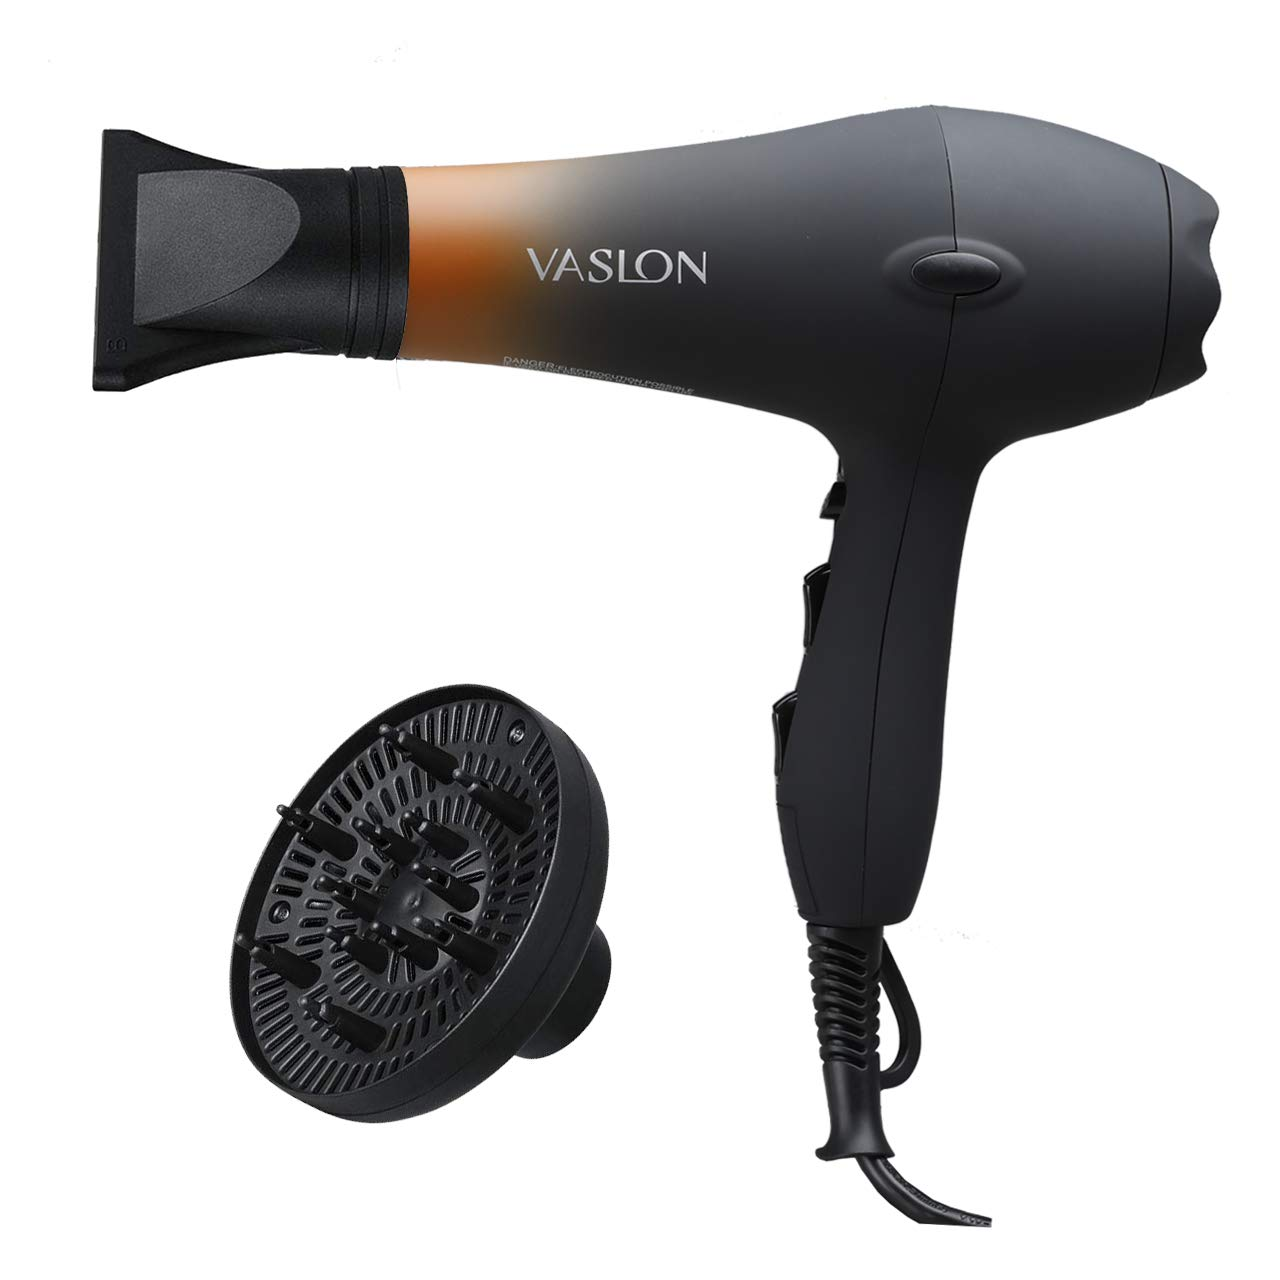 VASLON Salon Grade Professional Hair Dryer 1875W AC Motor Negative Ionic Ceramic Blow Dryer With 2 Speed and 3 Heat Settings Cold Shot Button, Diffuser and Concentrator